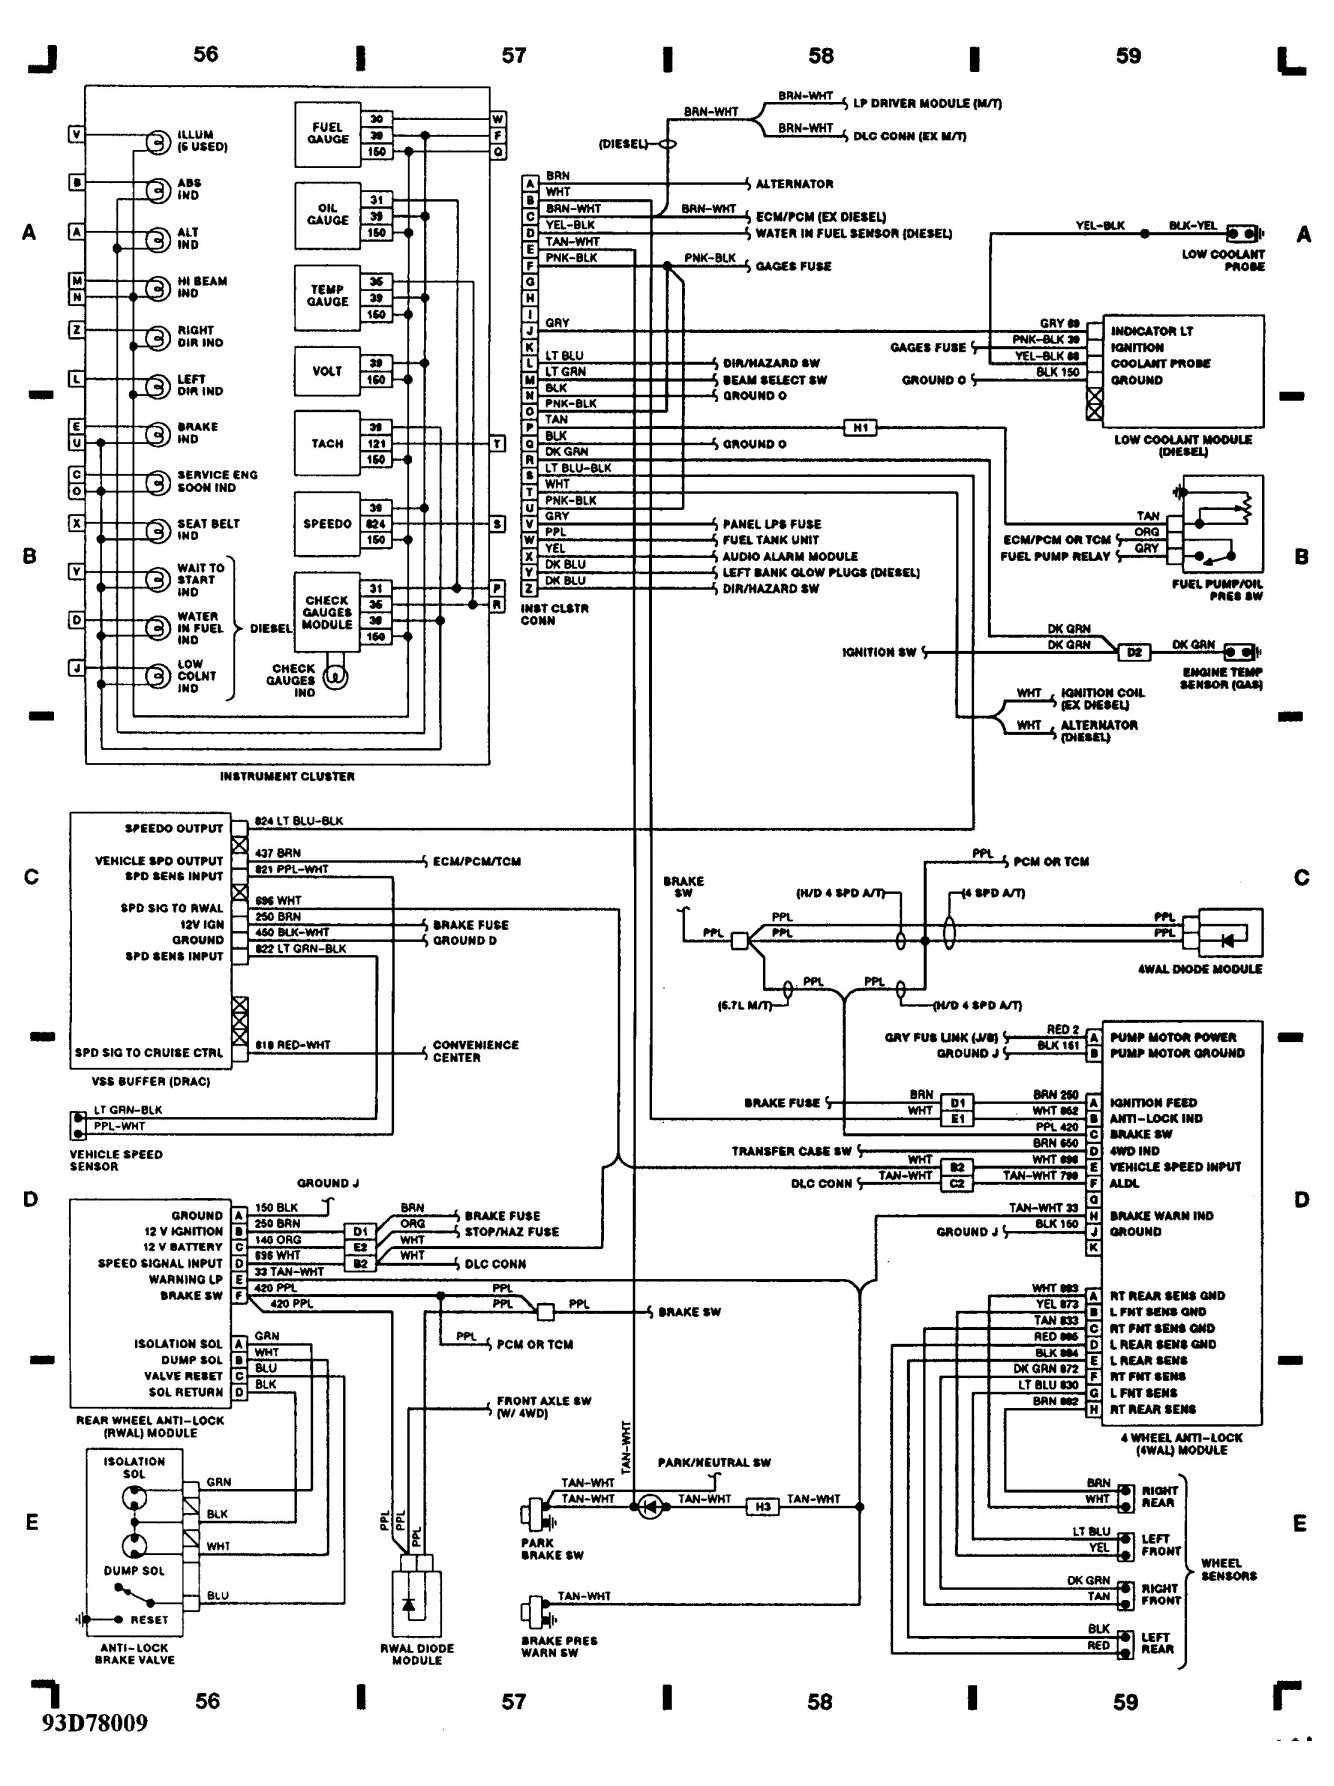 12+ 3126 cat engine ecm wiring diagram - engine diagram - wiringg.net |  trailer light wiring, diagram, chevy silverado  pinterest